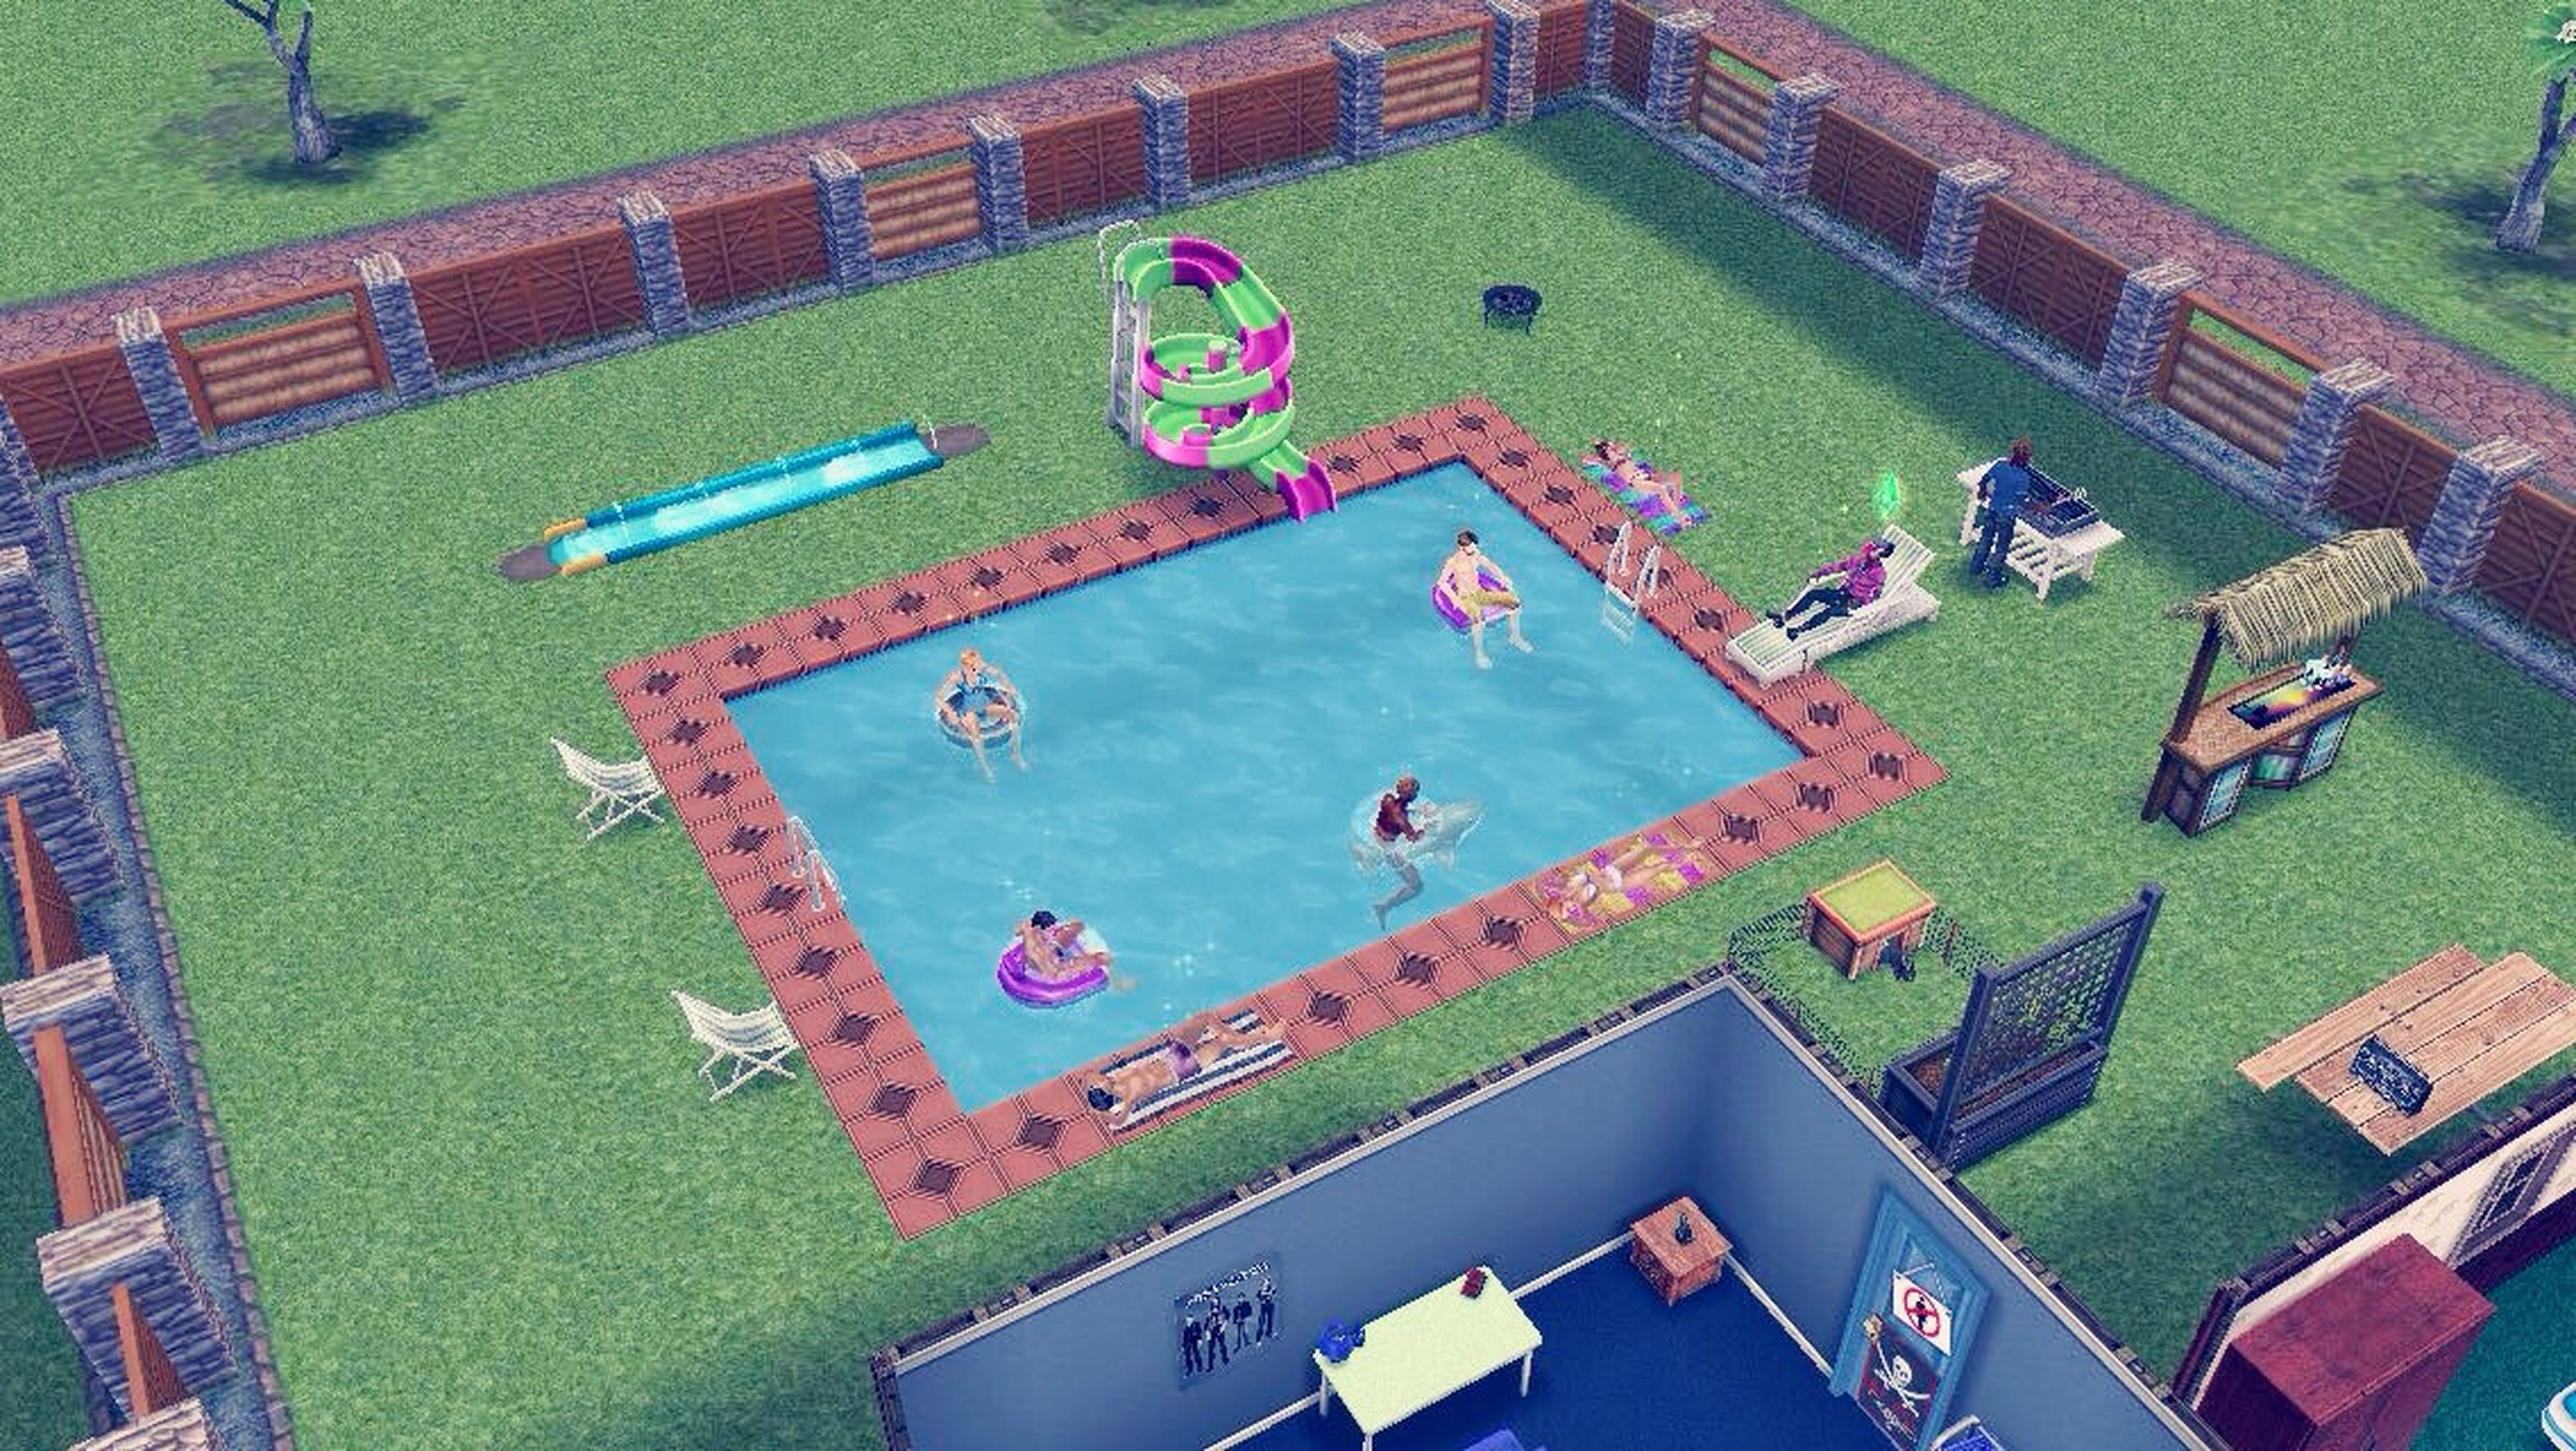 I'm such a Geek Geeklife Thesims Freeplay Sims Fanatic Pool Party Swimming Pool Sim Life Having Fun IPhone